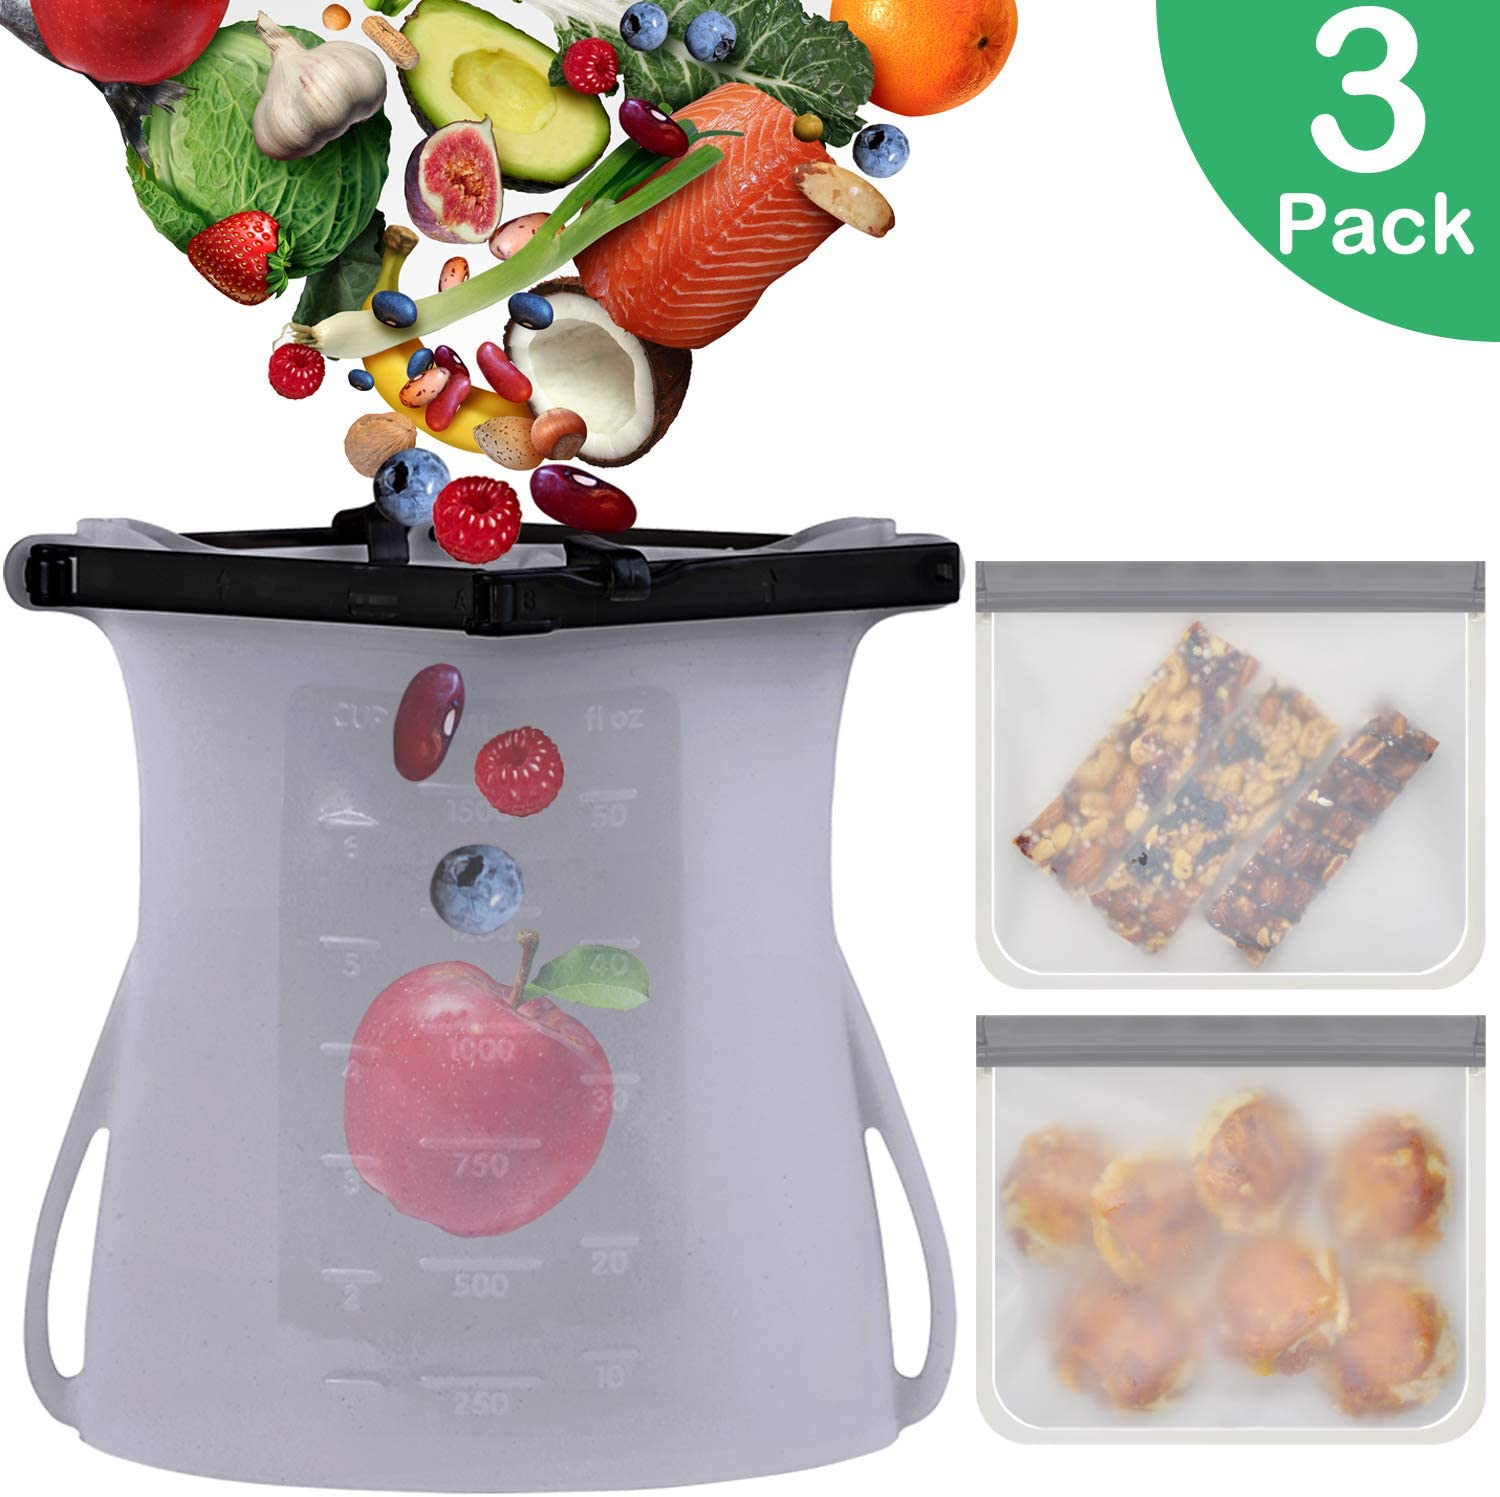 Reusable Food Storage Bags,3 Pack Airtight Freezer Bags(1 Reusable Silicone Bags + 2 Reusable Sandwich&Snack Bags) Best for Preserving and Cooking (3 Pack)